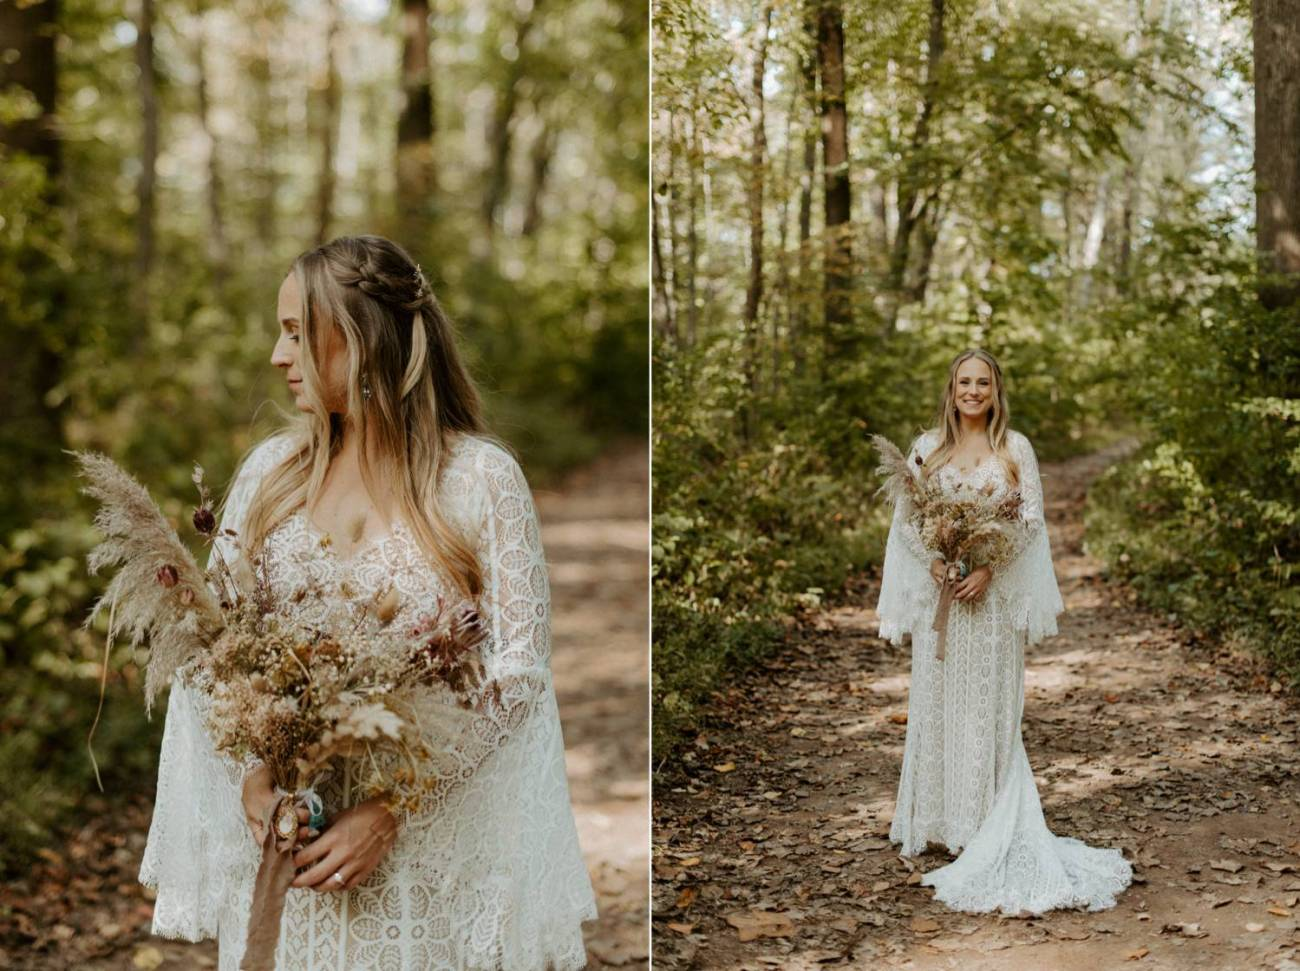 New Jersey Backyard Wedding Vintage Boho Wedding Hemlock Falls NJ Bend Oregon Wedding Phtographer Anais Possamai Photography 032